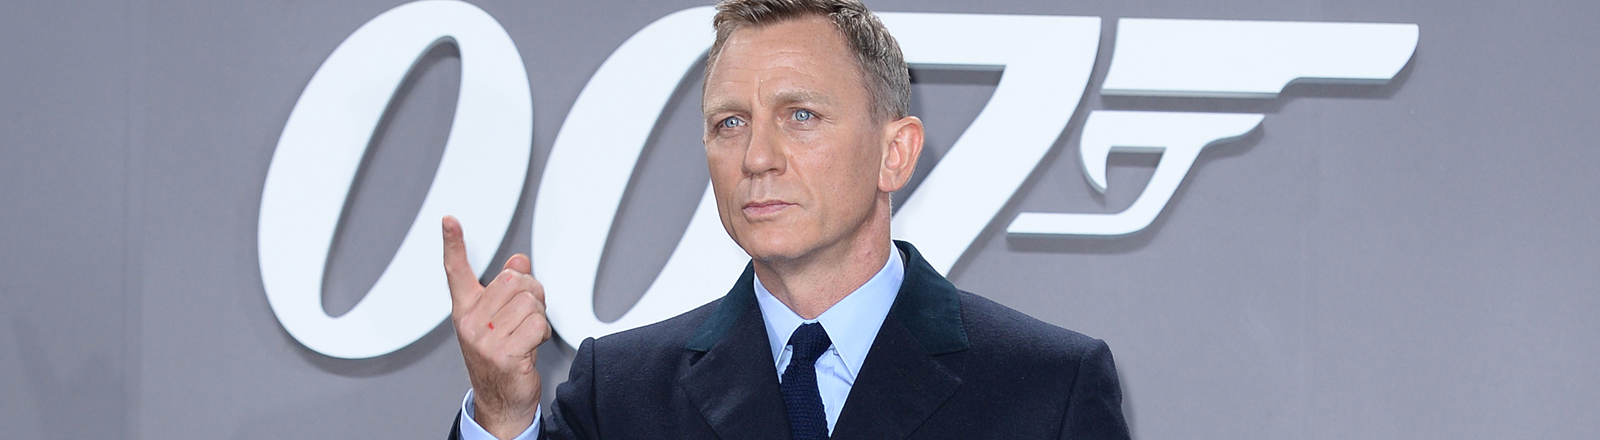 Daniel Craig als James Bond. dpa